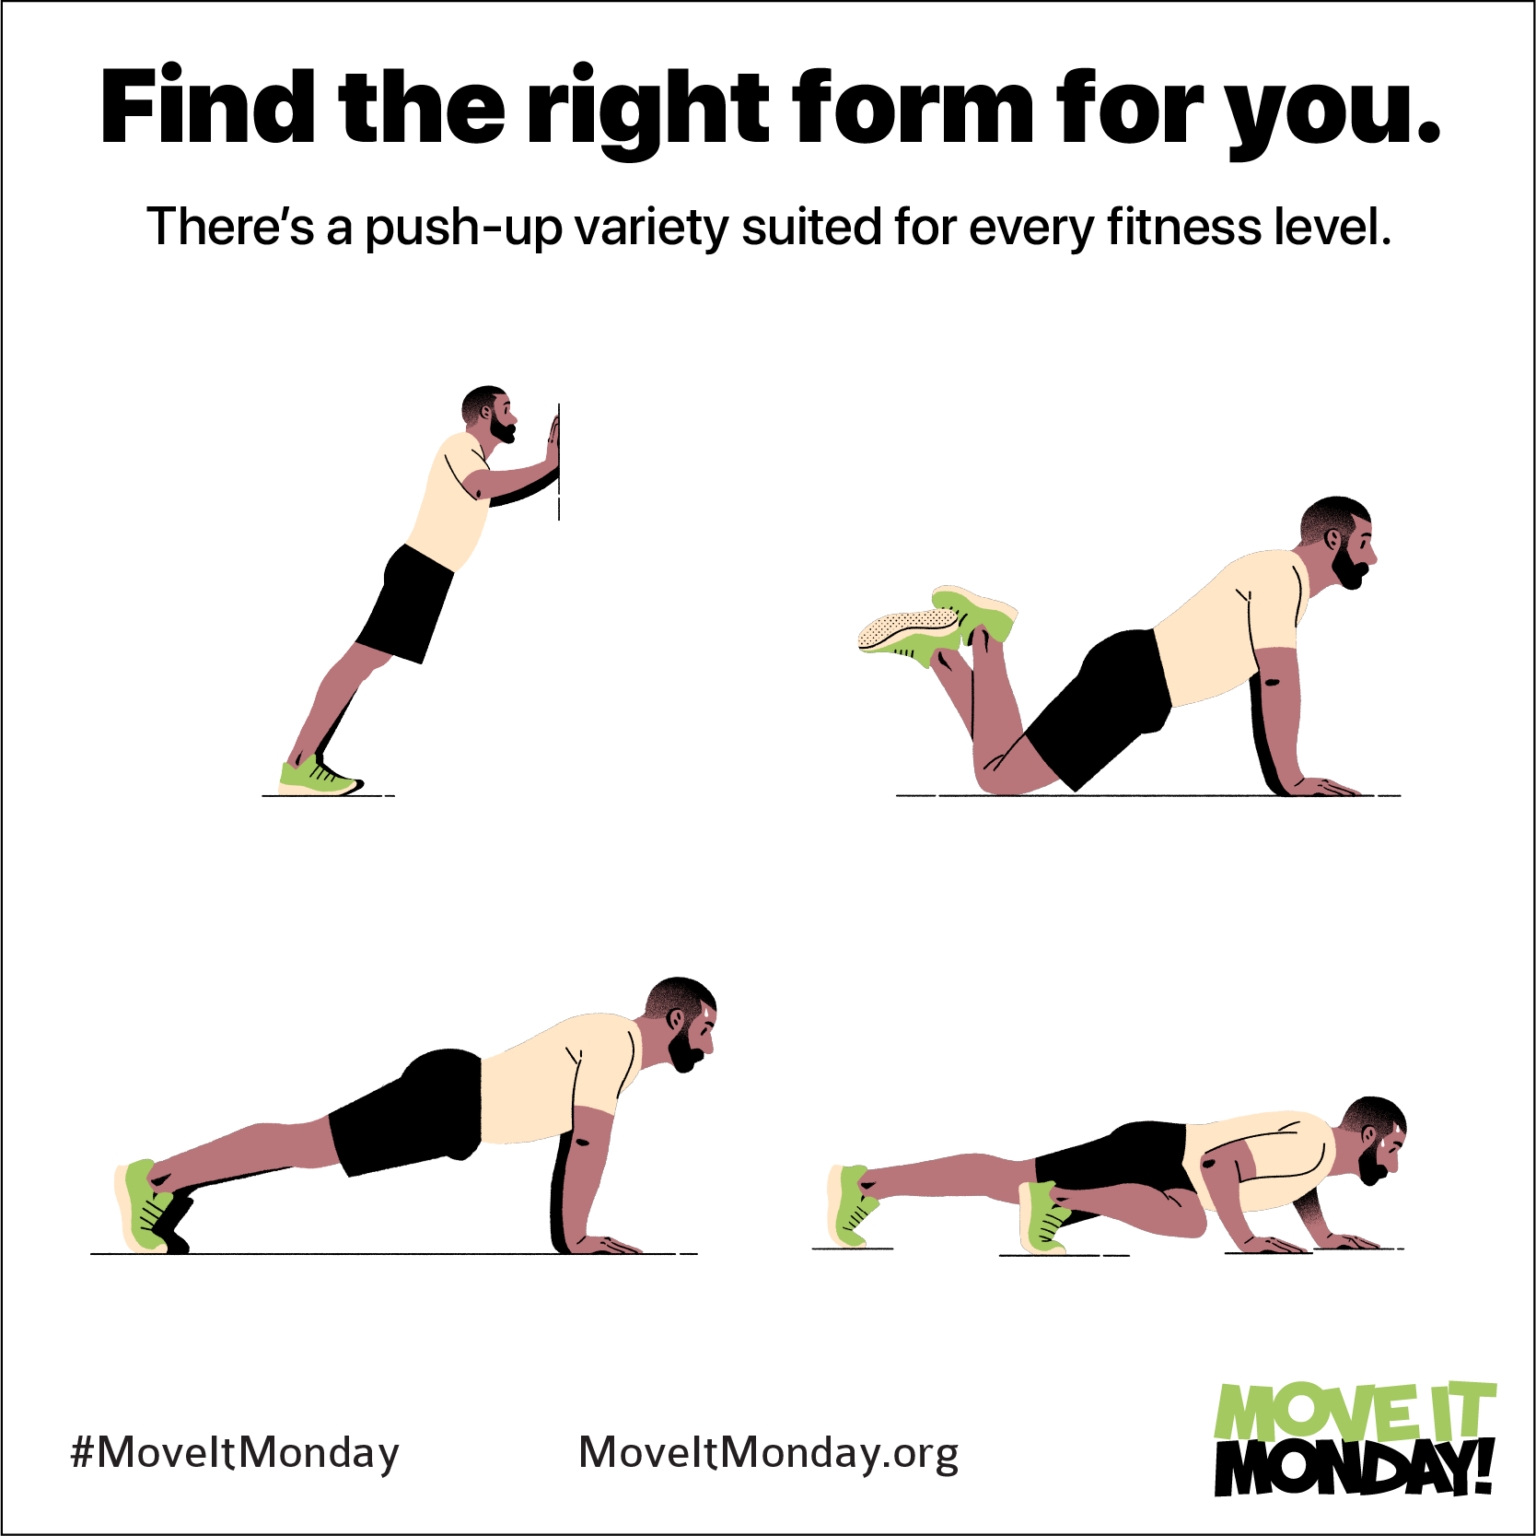 move-it-monday-graphic-progression-of-a-push-up-1536x1536